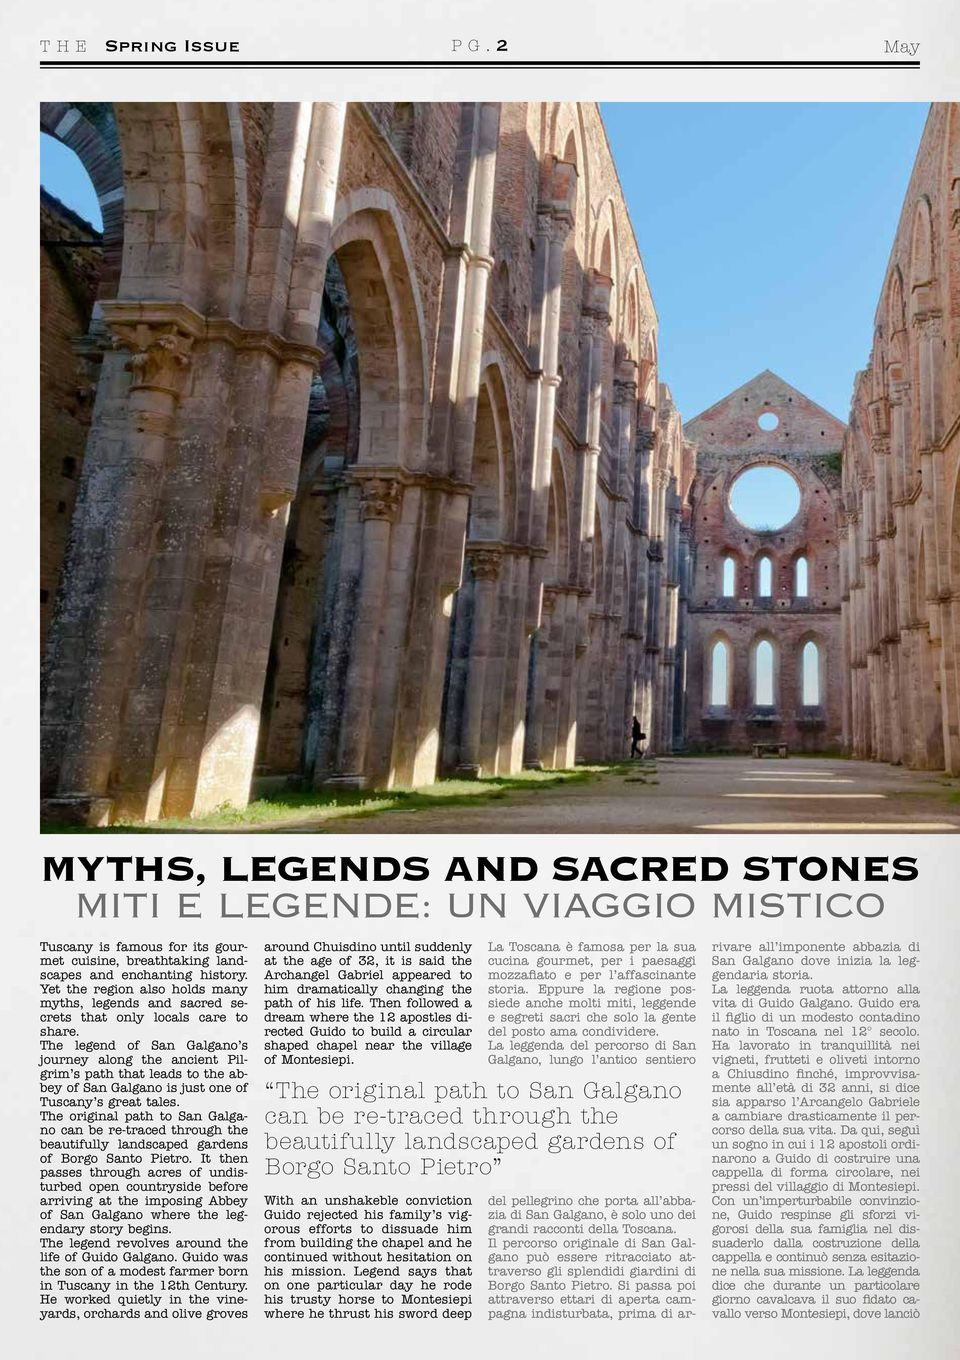 The legend of San Galgano s journey along the ancient Pilgrim s path that leads to the abbey of San Galgano is just one of Tuscany s great tales.